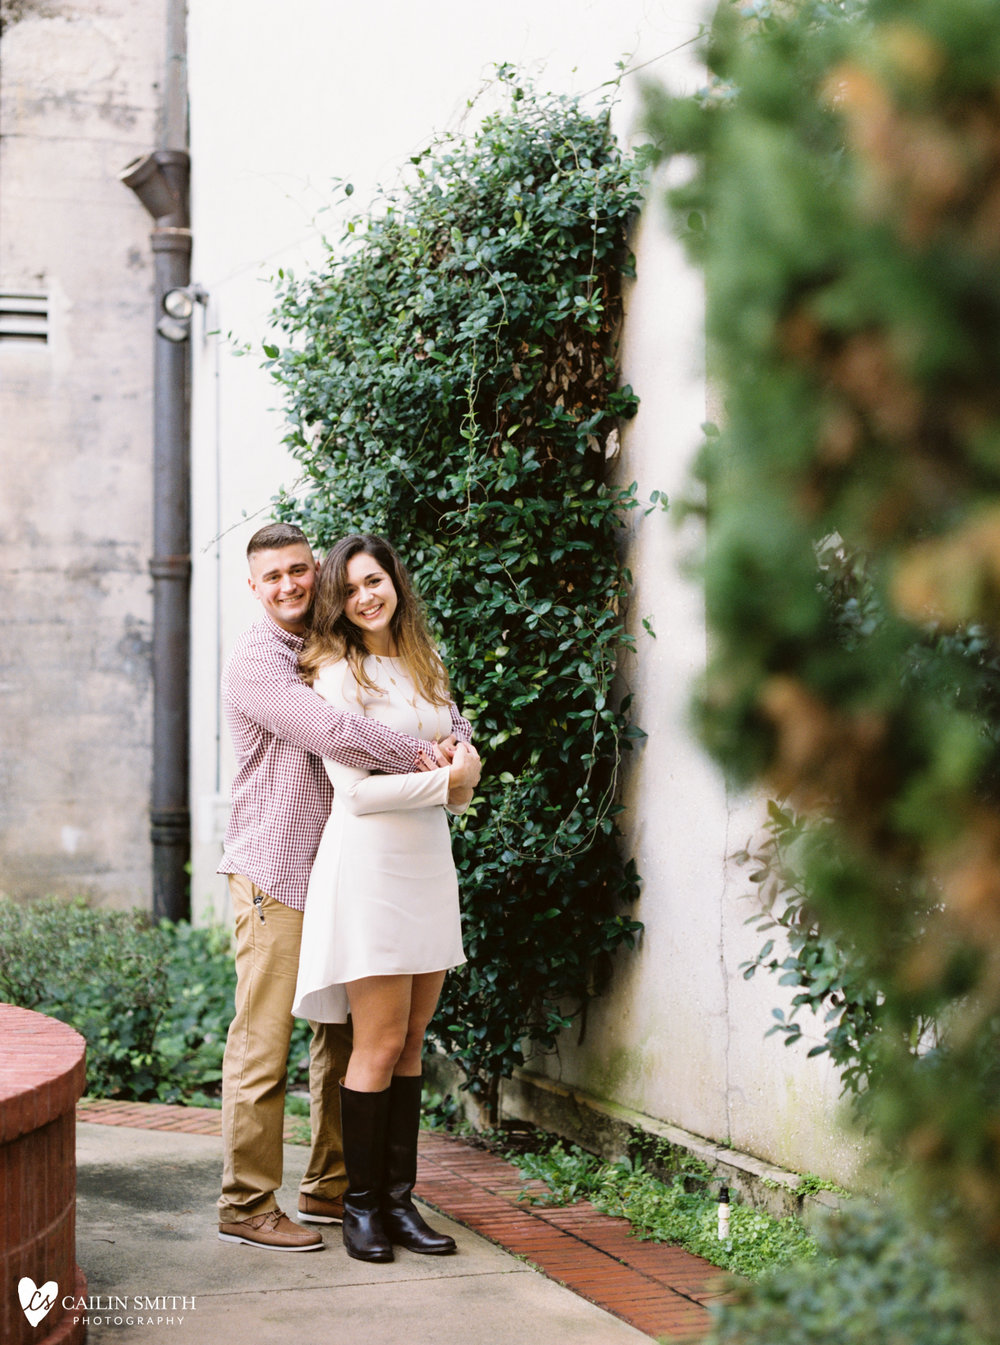 Meaghan_Chase_St_Augustine_Nights_of_Lights_Engagement_Photography_08.jpg